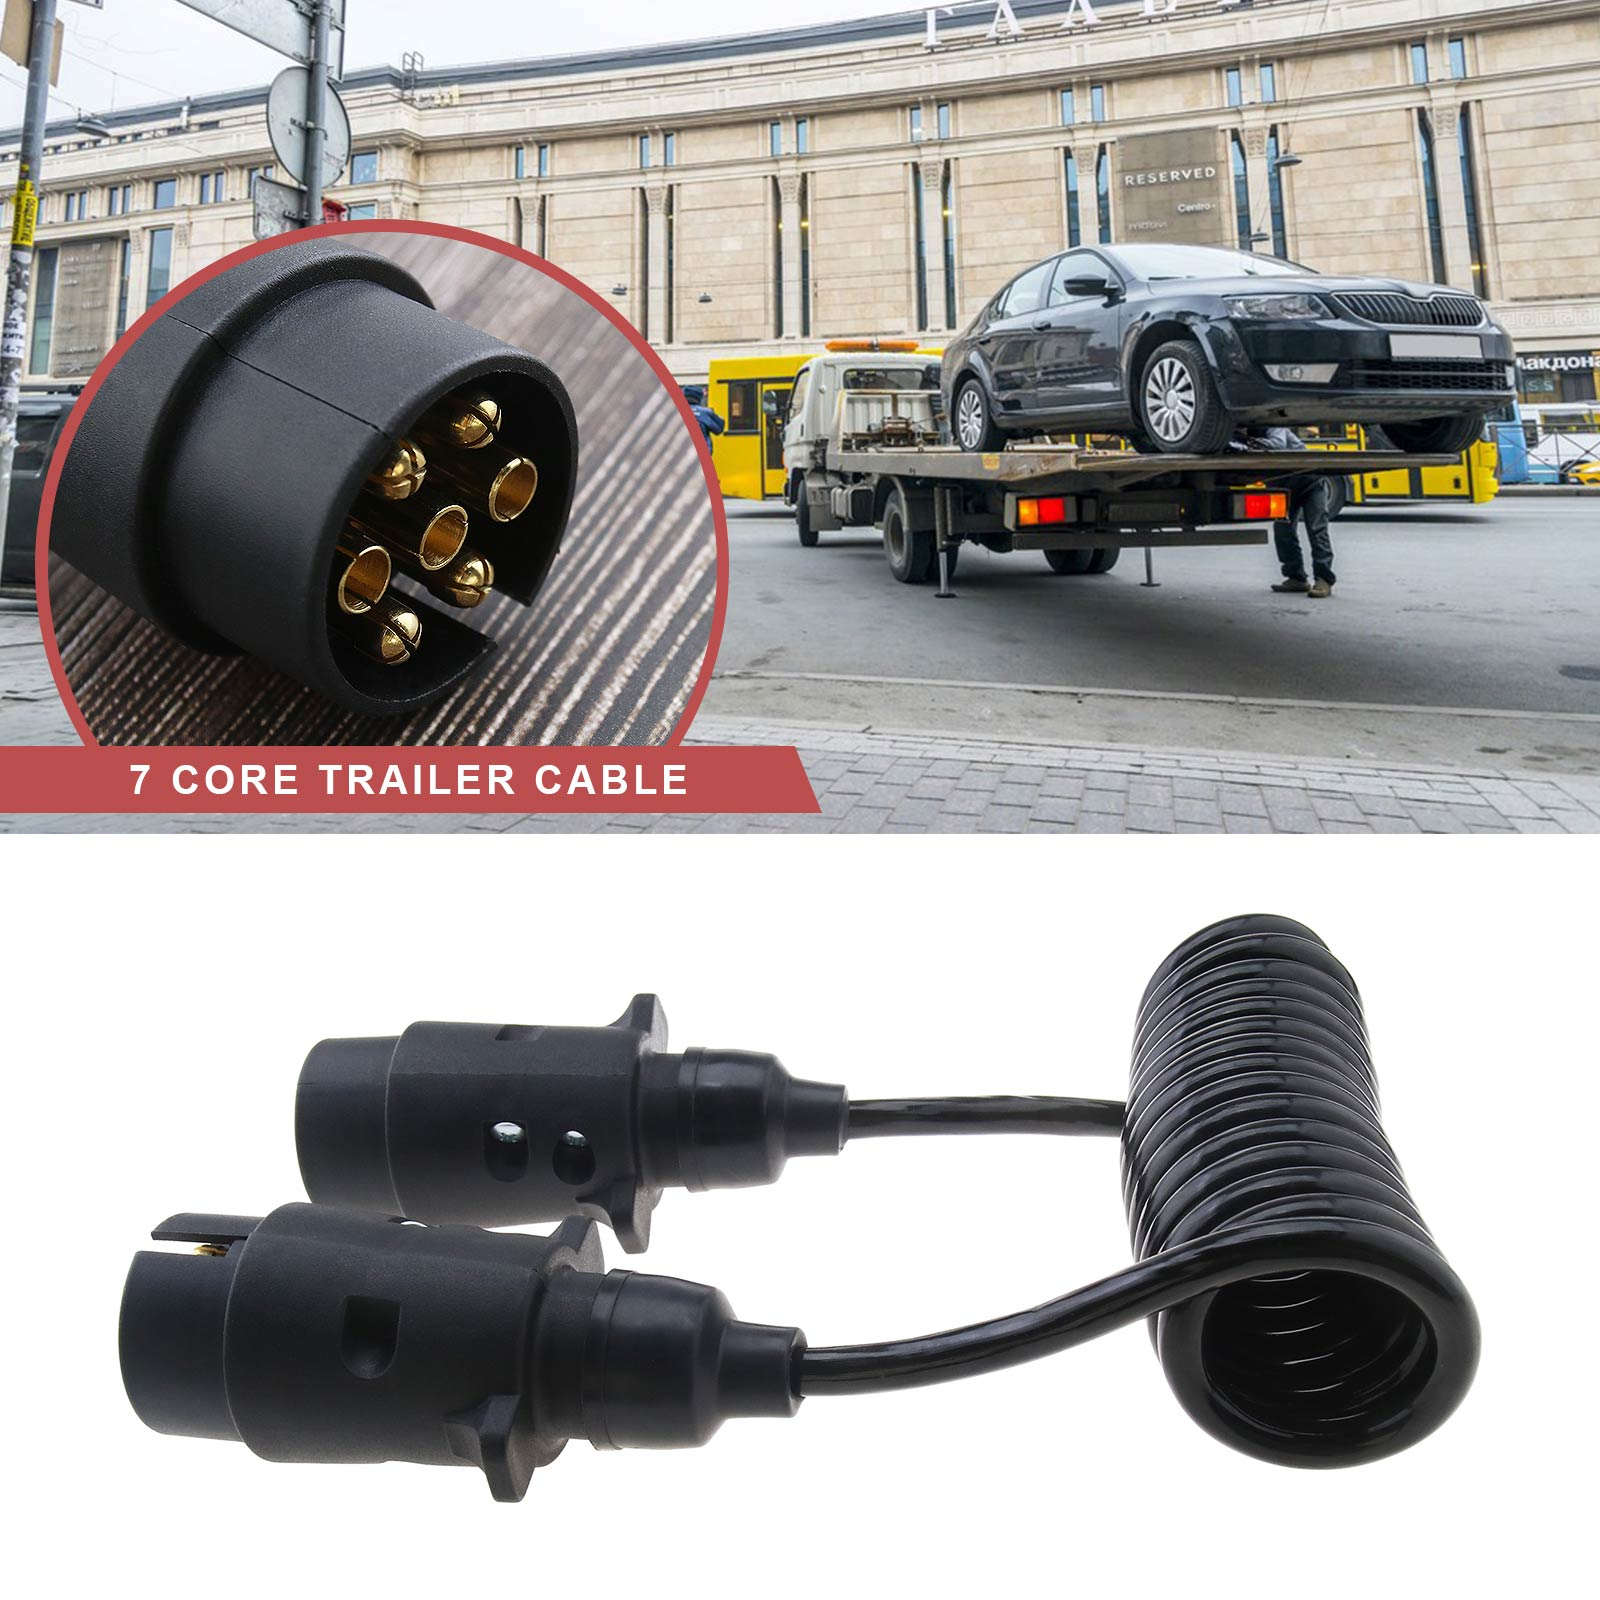 7 Pin Trailer Extension : M extension curly cable trailer light board pin plug